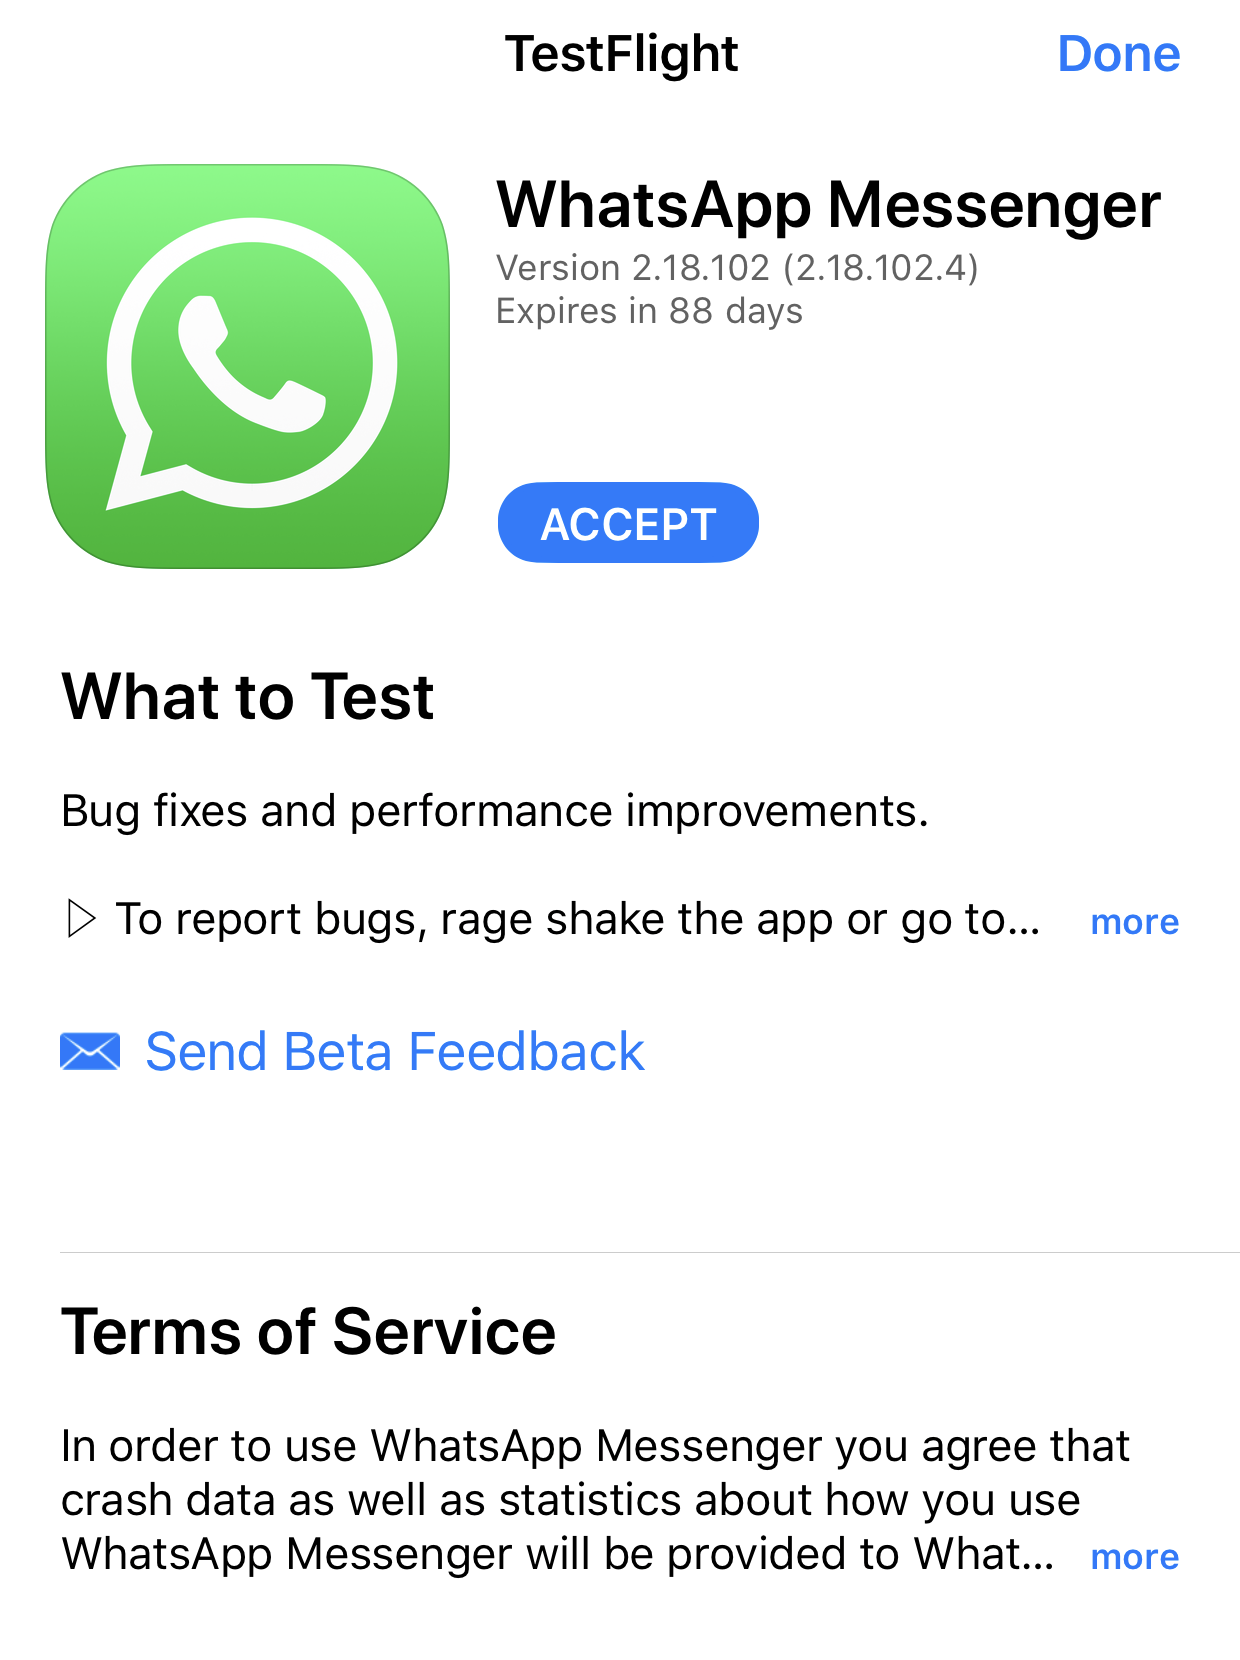 WhatsApp officially launches an iOS public beta program today